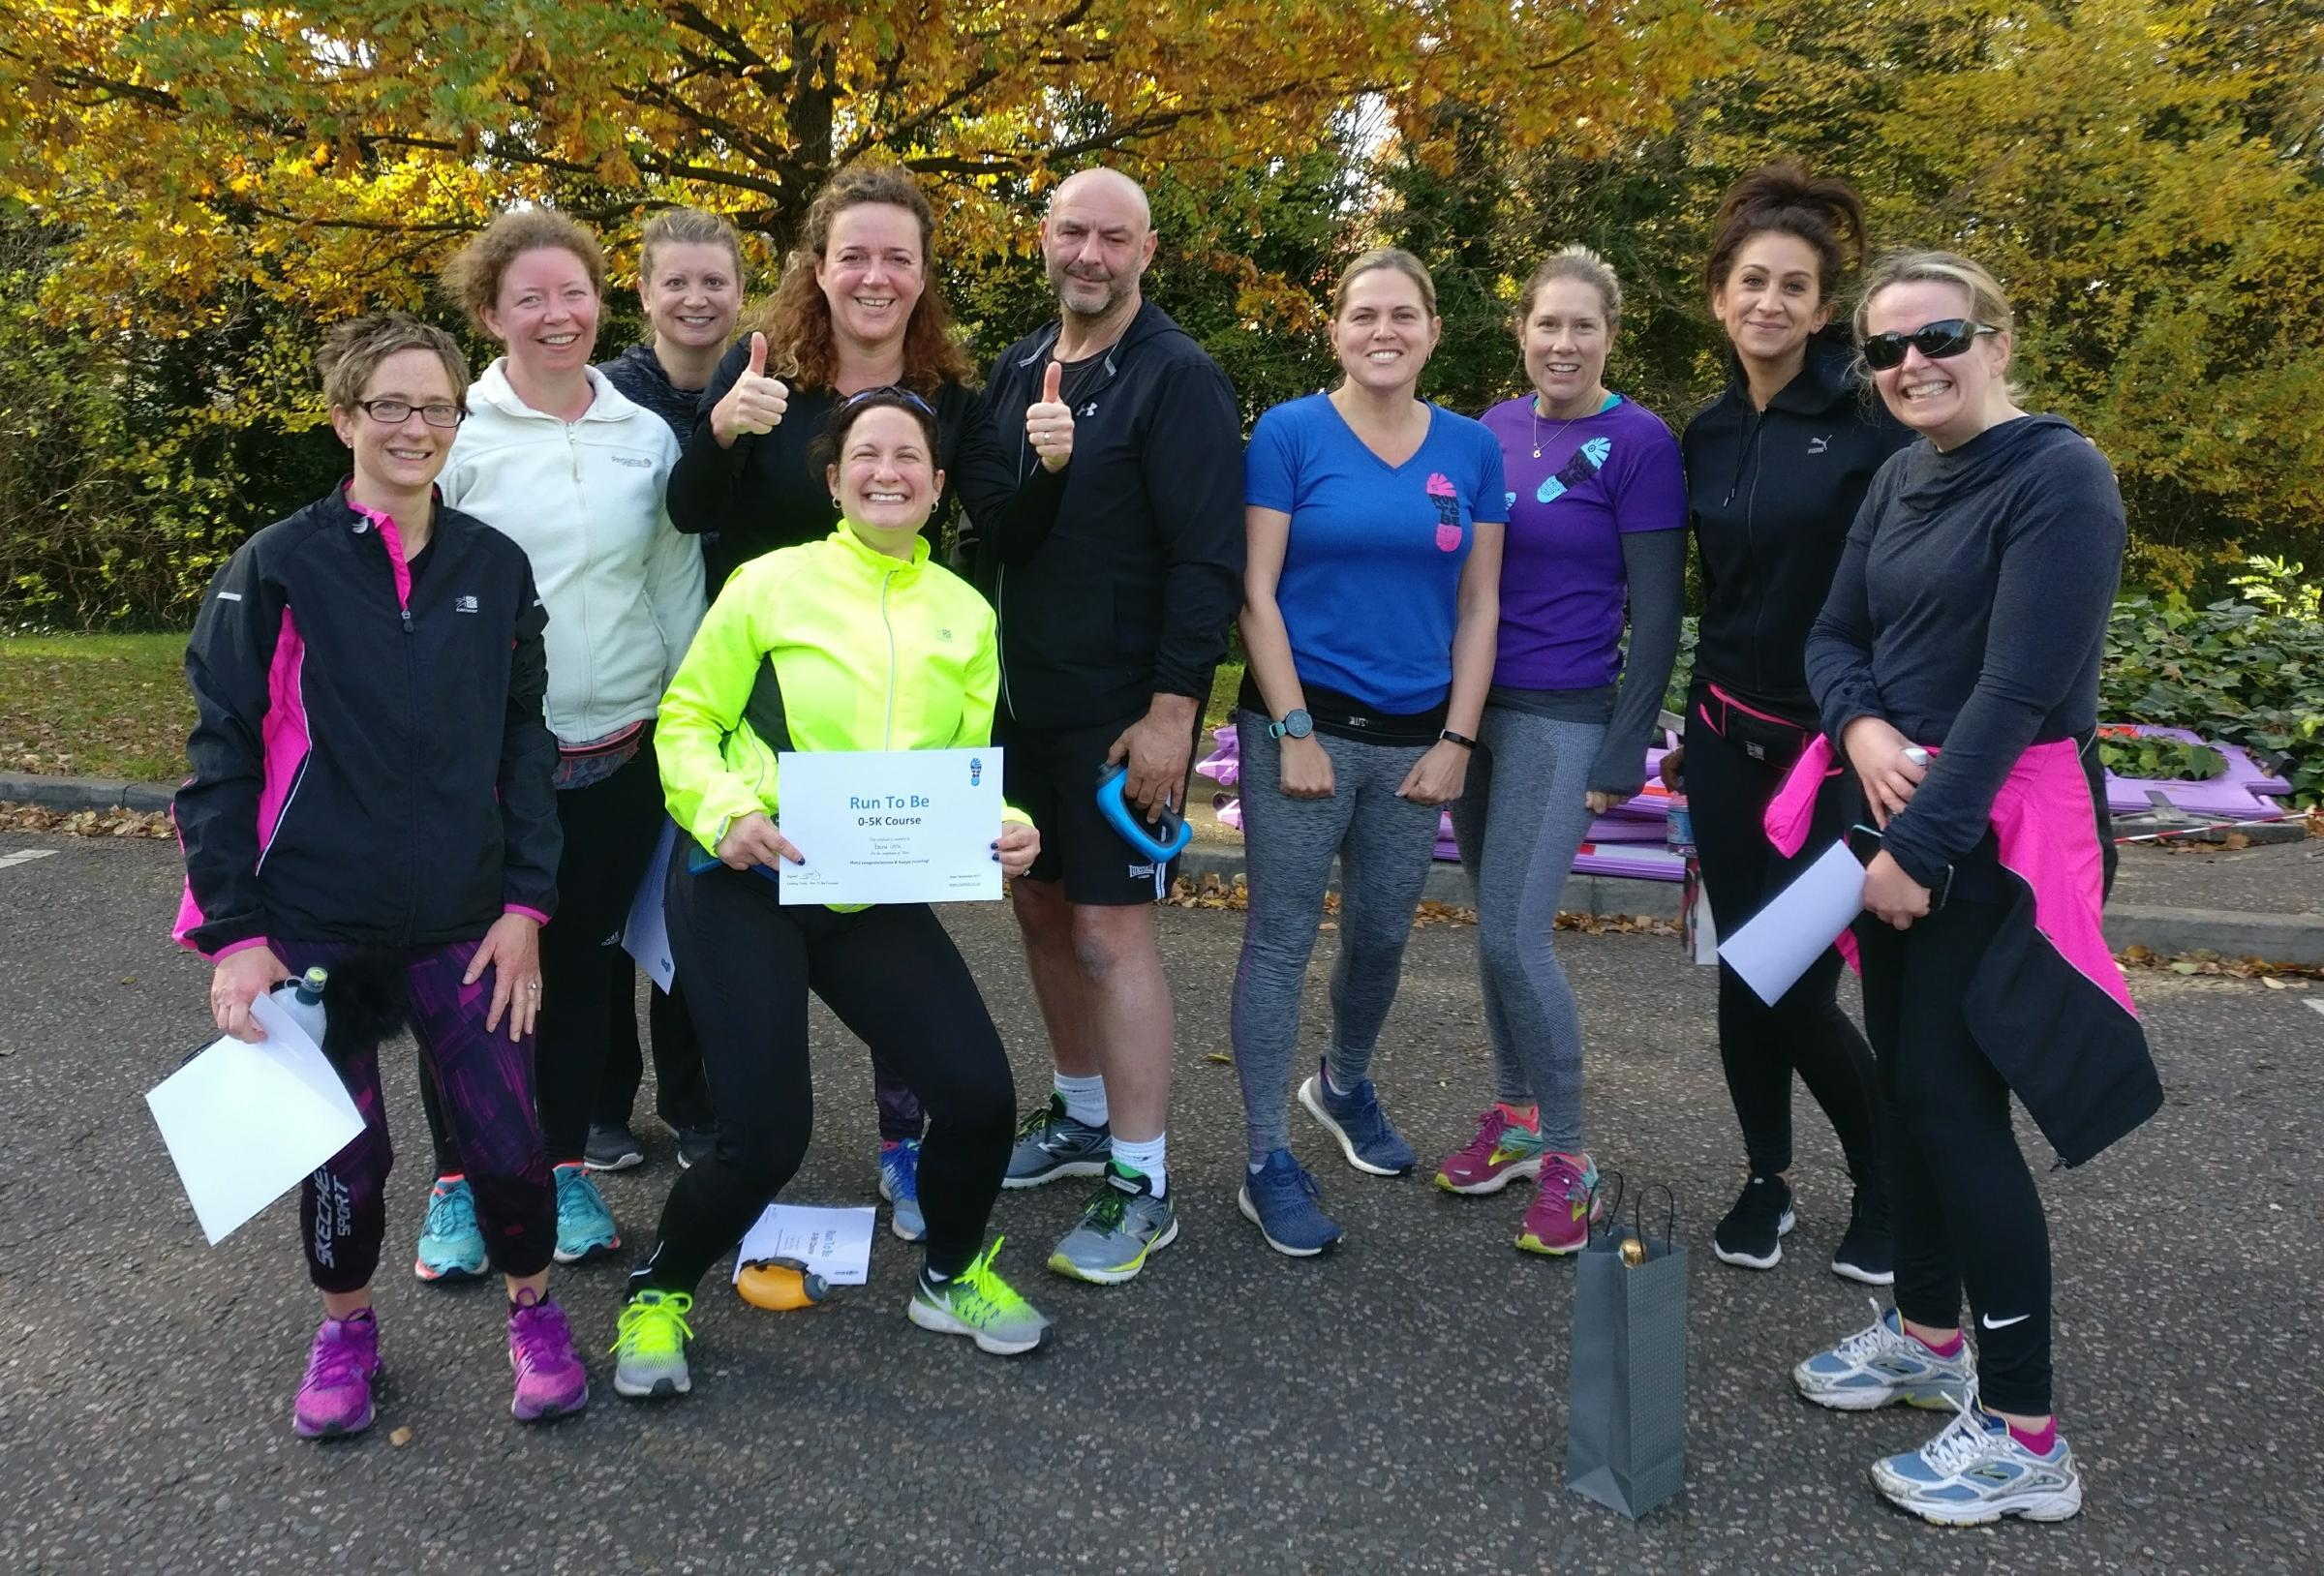 Run2Be is a running club with a difference, featuring elderly participants, those with cancer and people on weight loss programmes